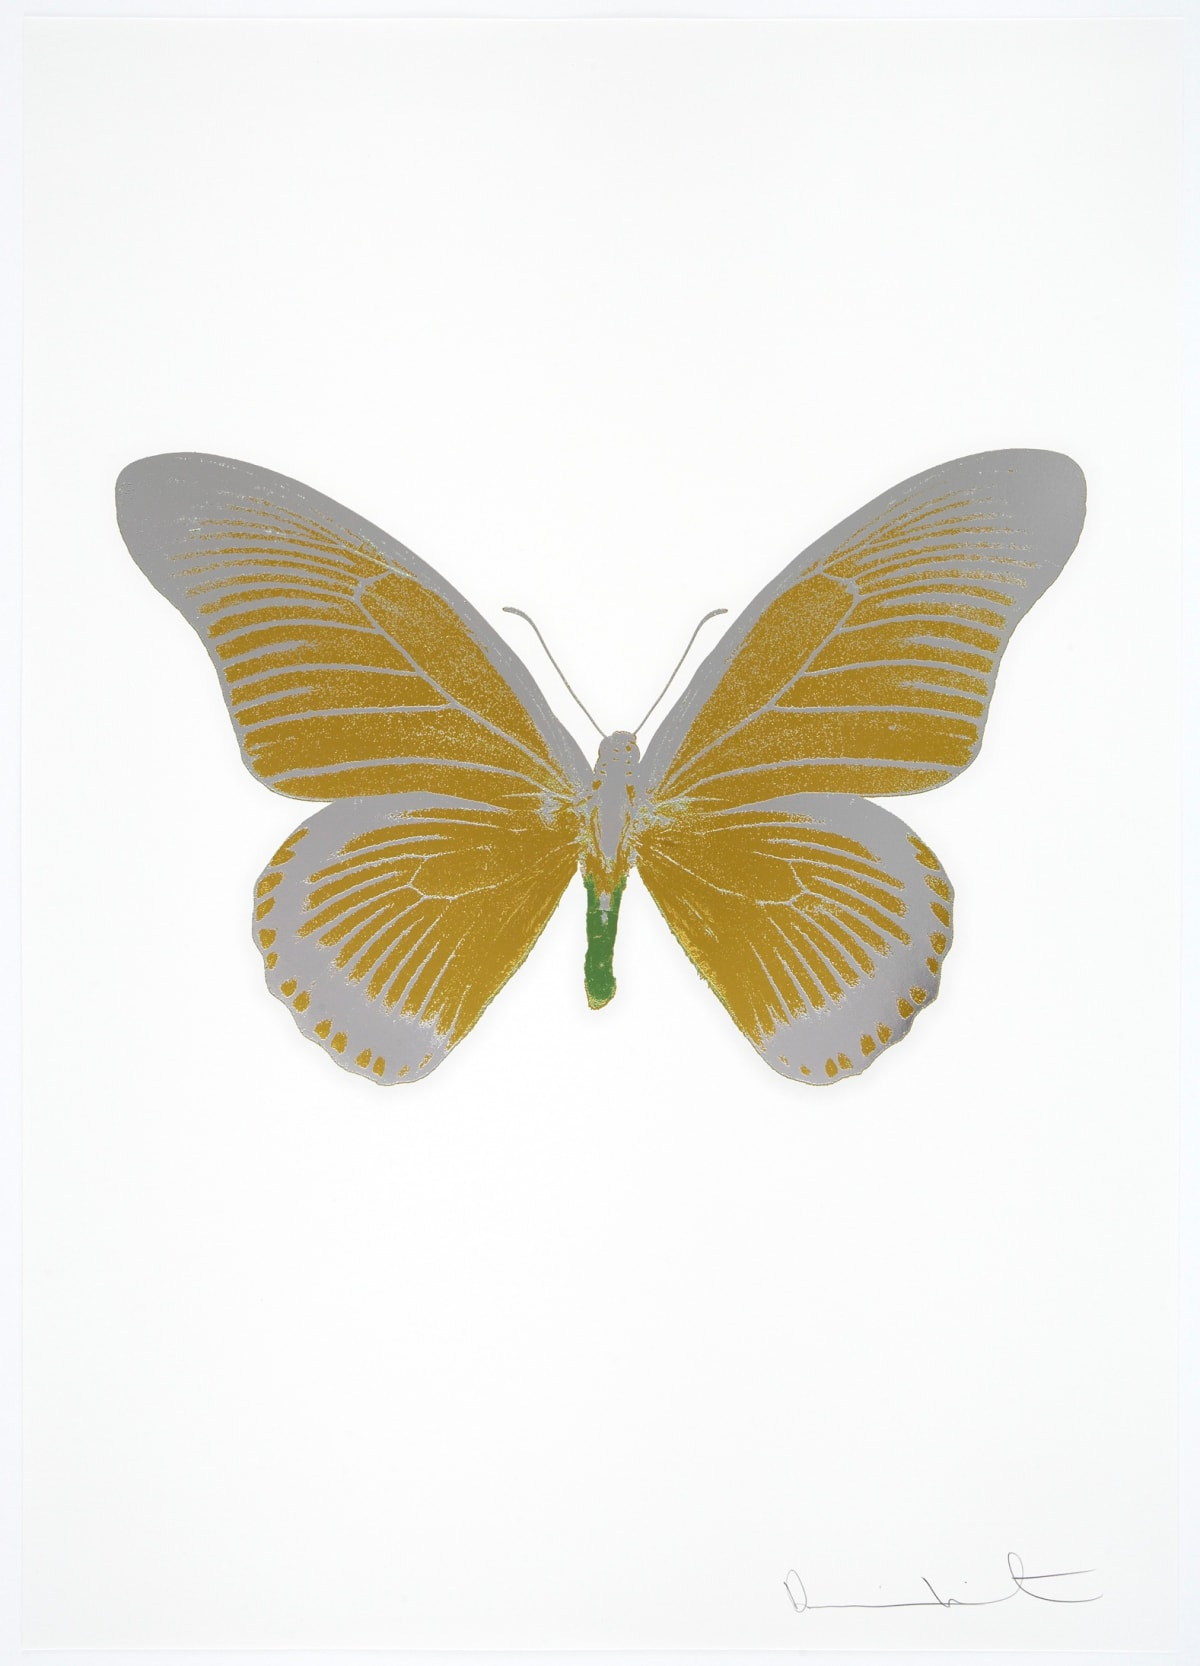 Damien Hirst The Souls IV - Oriental Gold/Silver Gloss/Leaf Green, 2010 3 colour foil block on 300gsm Arches 88 archival paper. Signed and numbered. Published by Paul Stolper and Other Criteria 72 x 51cm OC8034 / 1418-57 Edition of 15